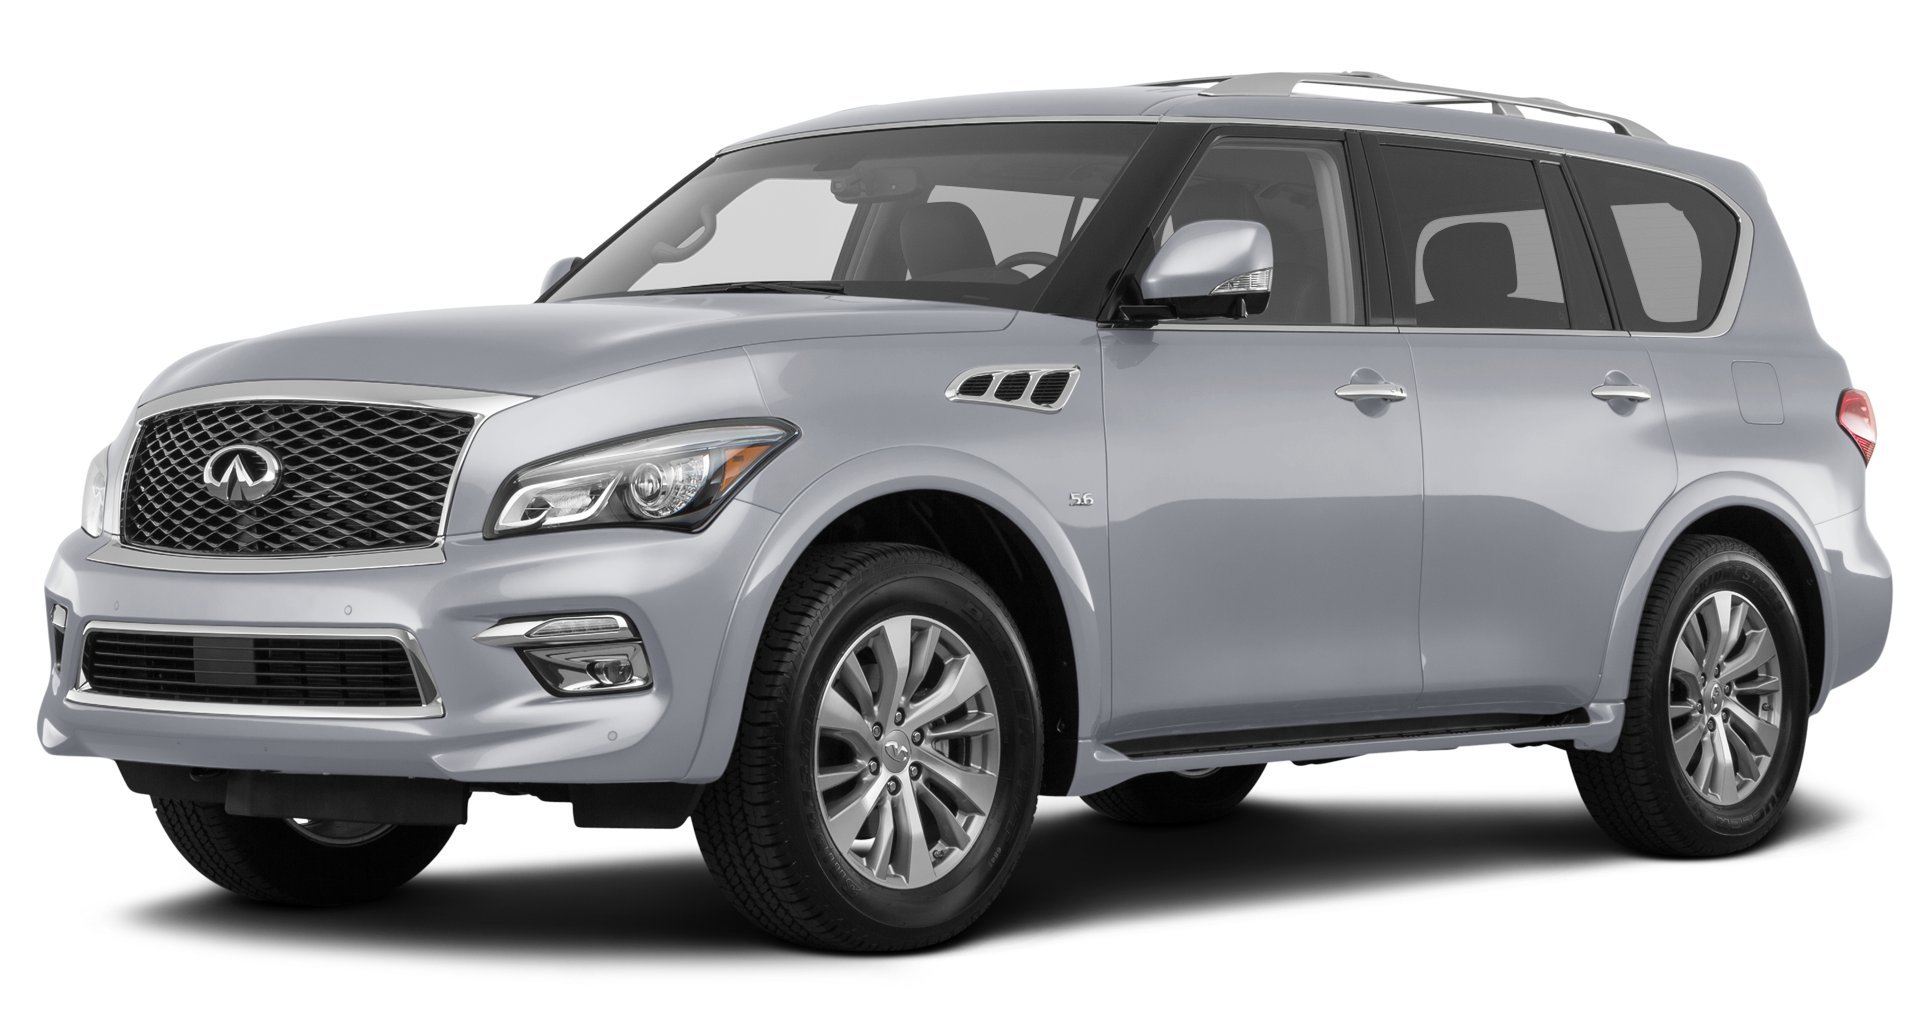 2017 gmc yukon reviews images and specs vehicles. Black Bedroom Furniture Sets. Home Design Ideas